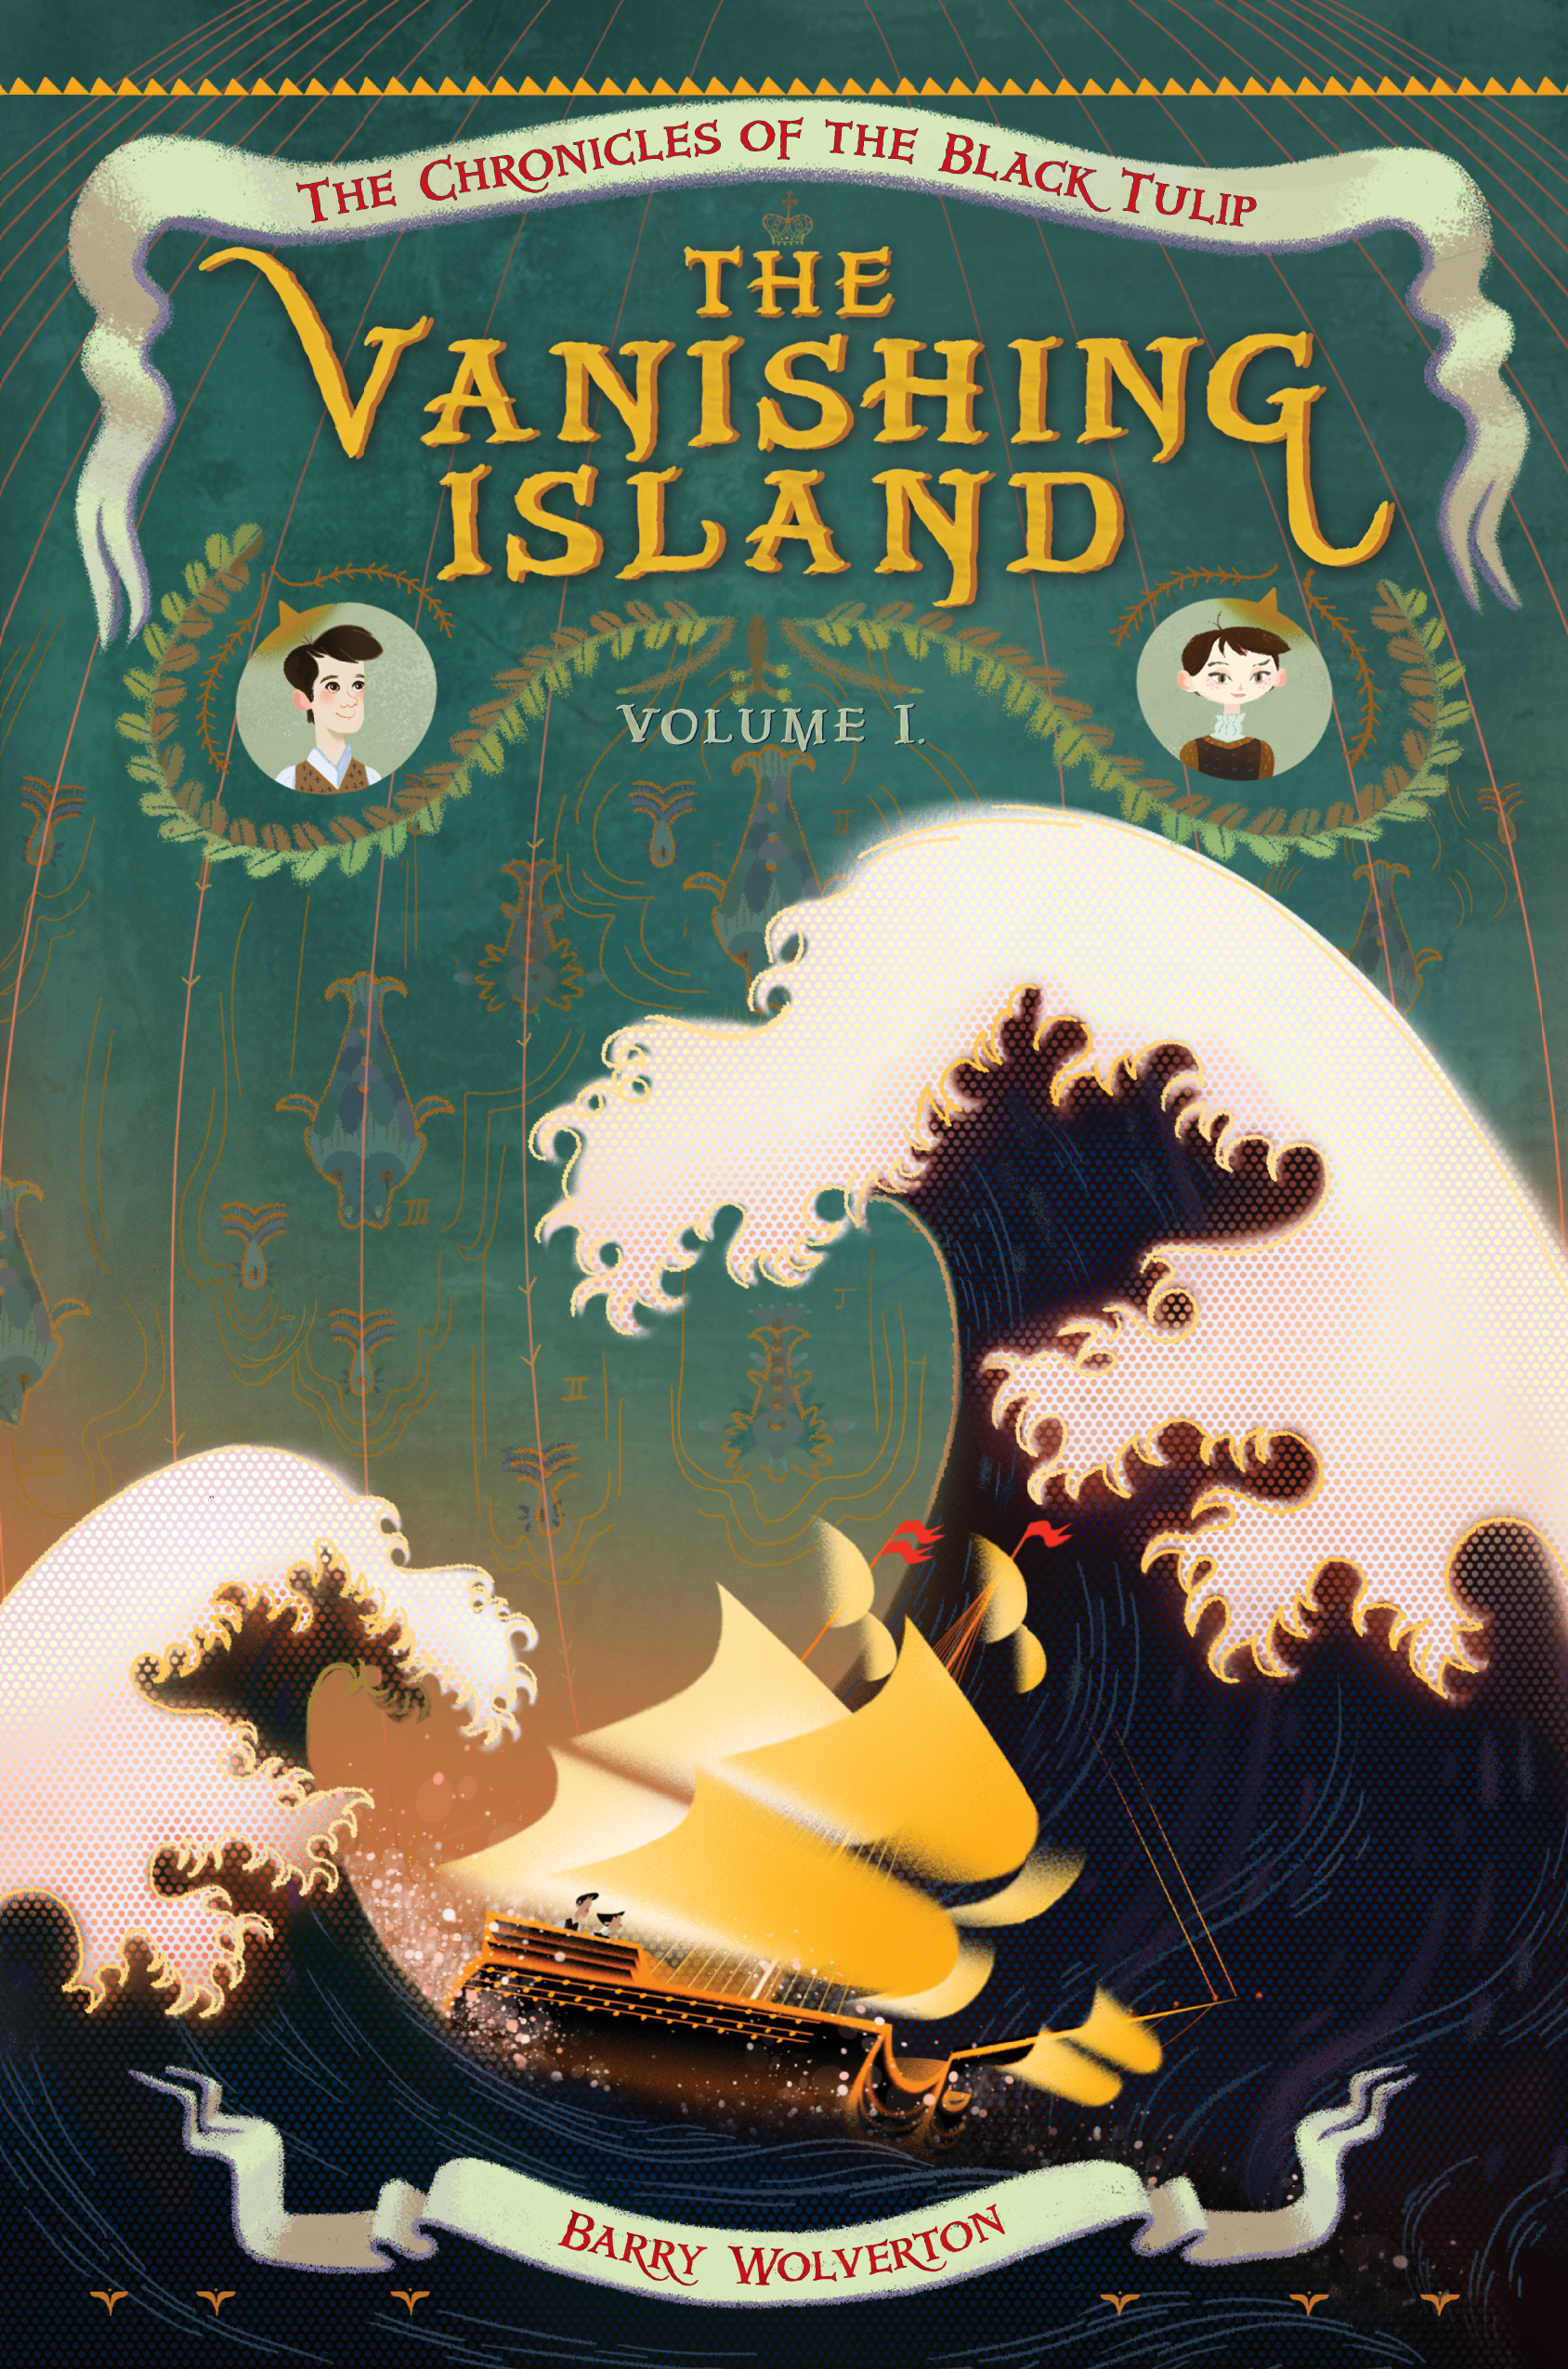 Cover Reveal:  THE VANISHING ISLAND   by Barry Wolverton post thumbnail